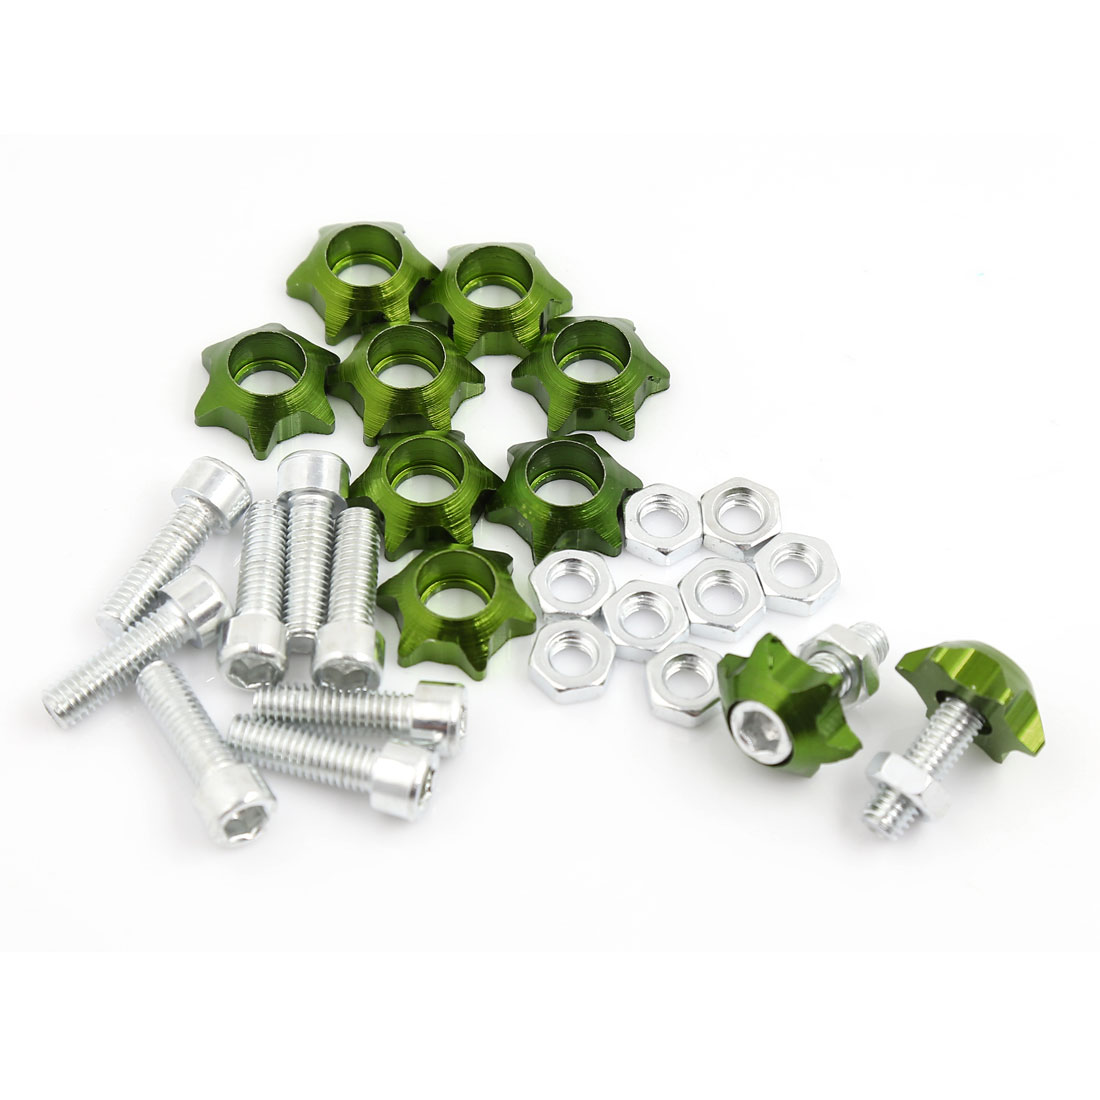 10 Pcs Green License Plate Frame Bolt Screws 6mm Thread Dia for Motorcycle Auto